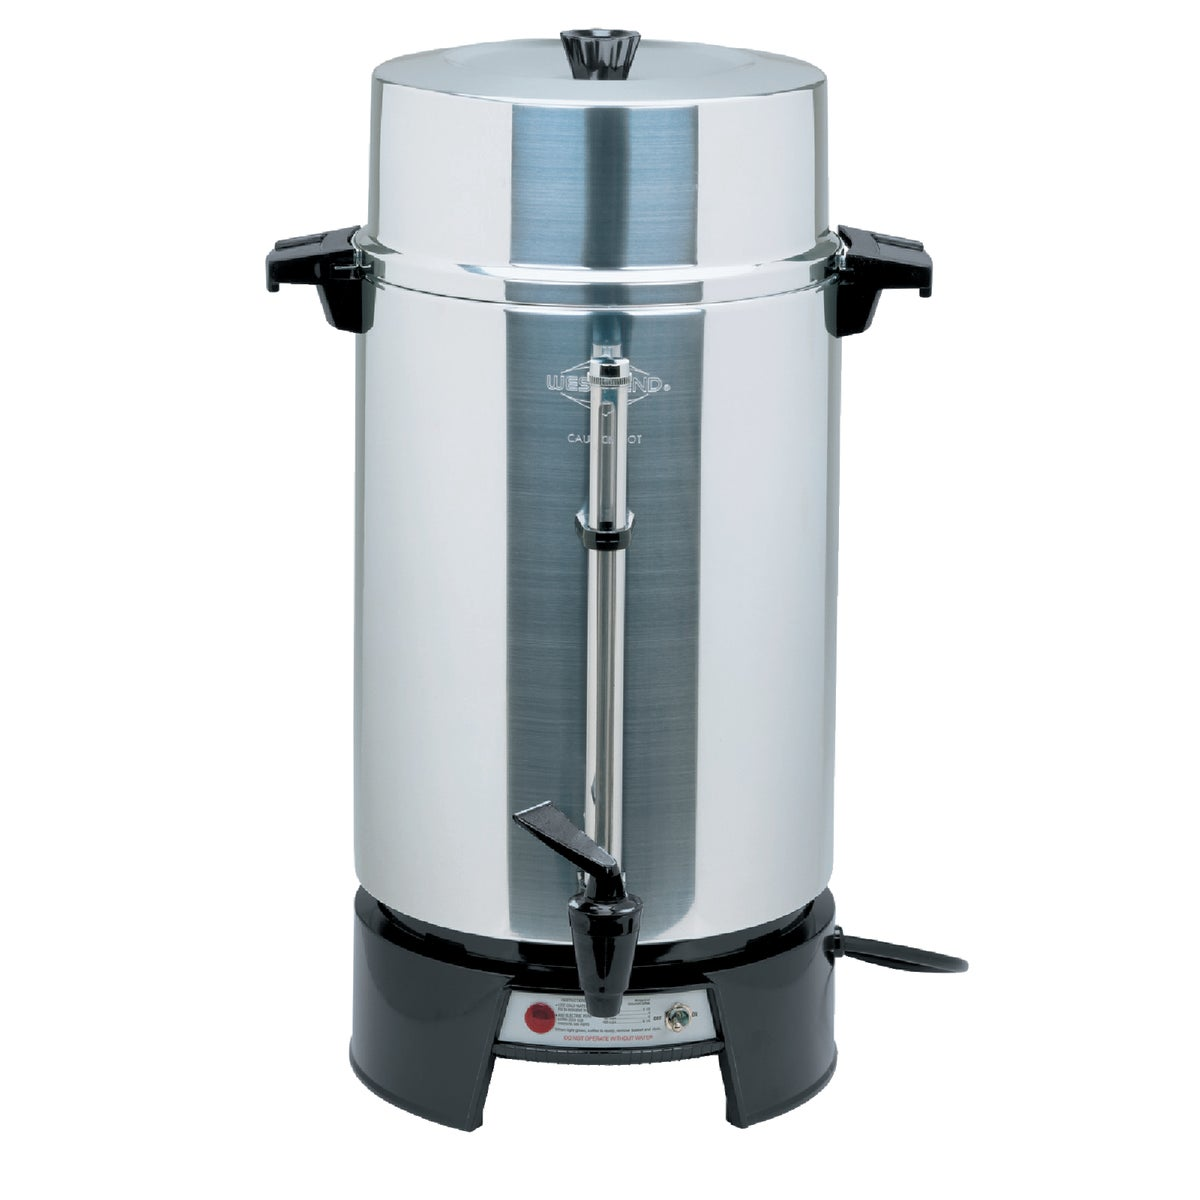 100CUP ALUM COFFEE MAKER - 33600 by Focus Electrics Llc